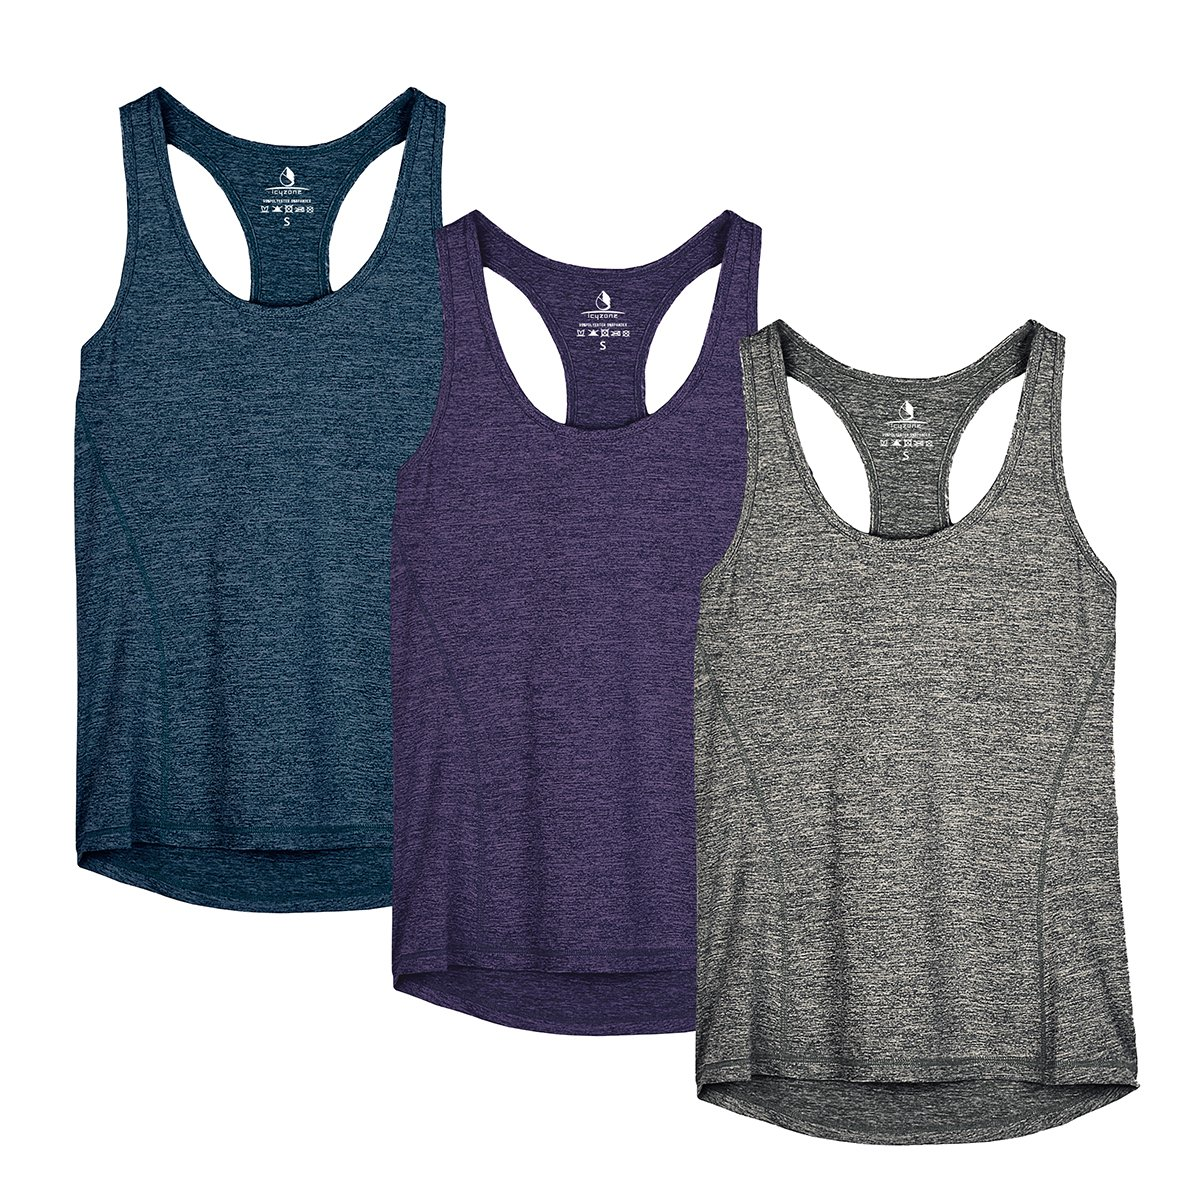 icyzone Workout Tank Tops for Women - Racerback Athletic Yoga Tops, Running Exercise Gym Shirts(Pack of 3)(XS, Royal Blue/Purple/Charcoal) by icyzone